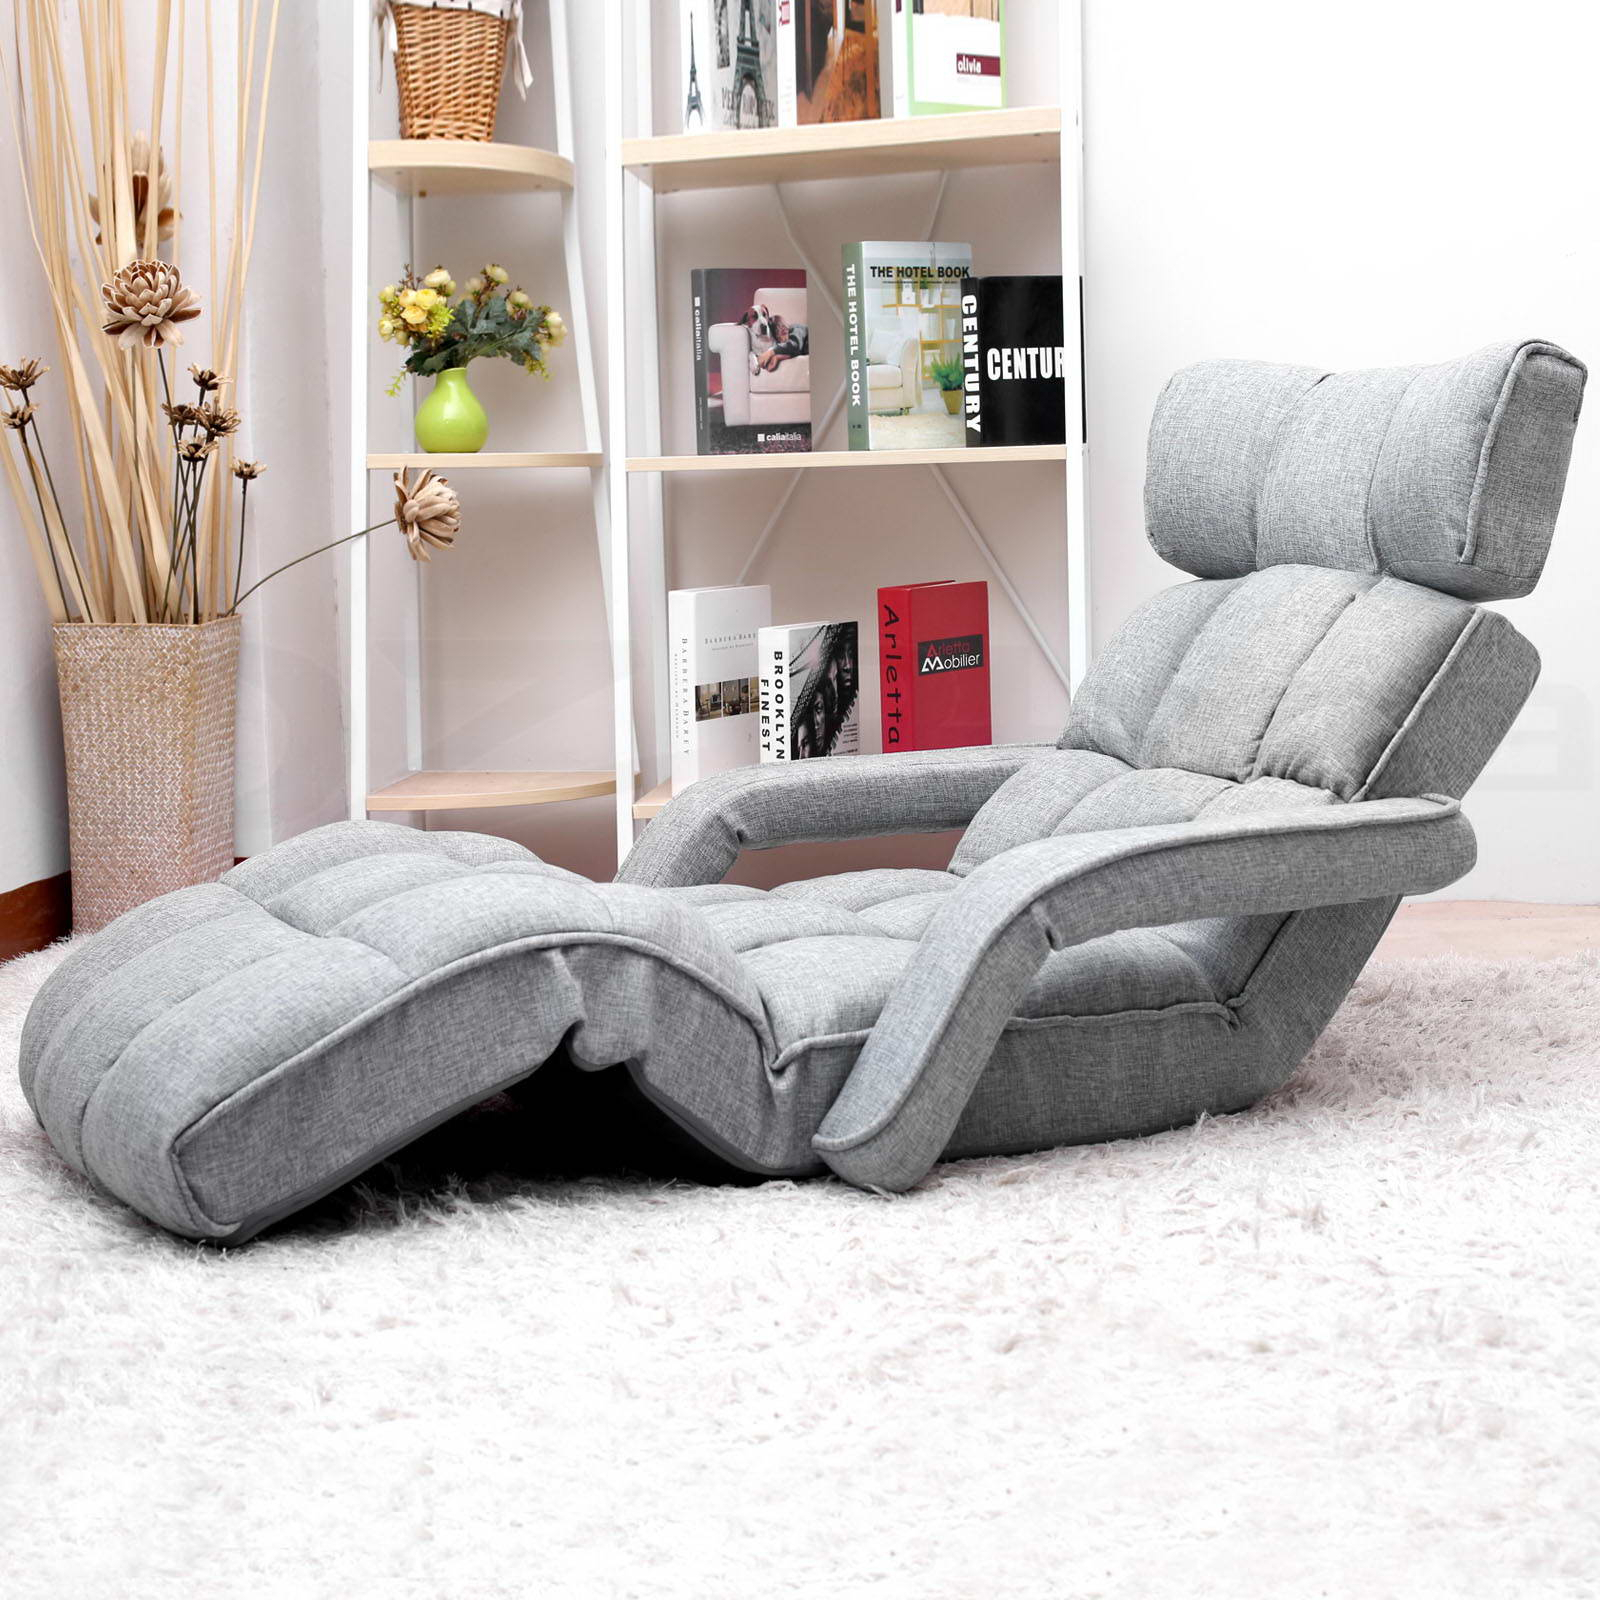 Lounge Sofa Bed Floor Armchair Folding Recliner Chaise Intended For Folding Sofa Chairs (View 14 of 15)